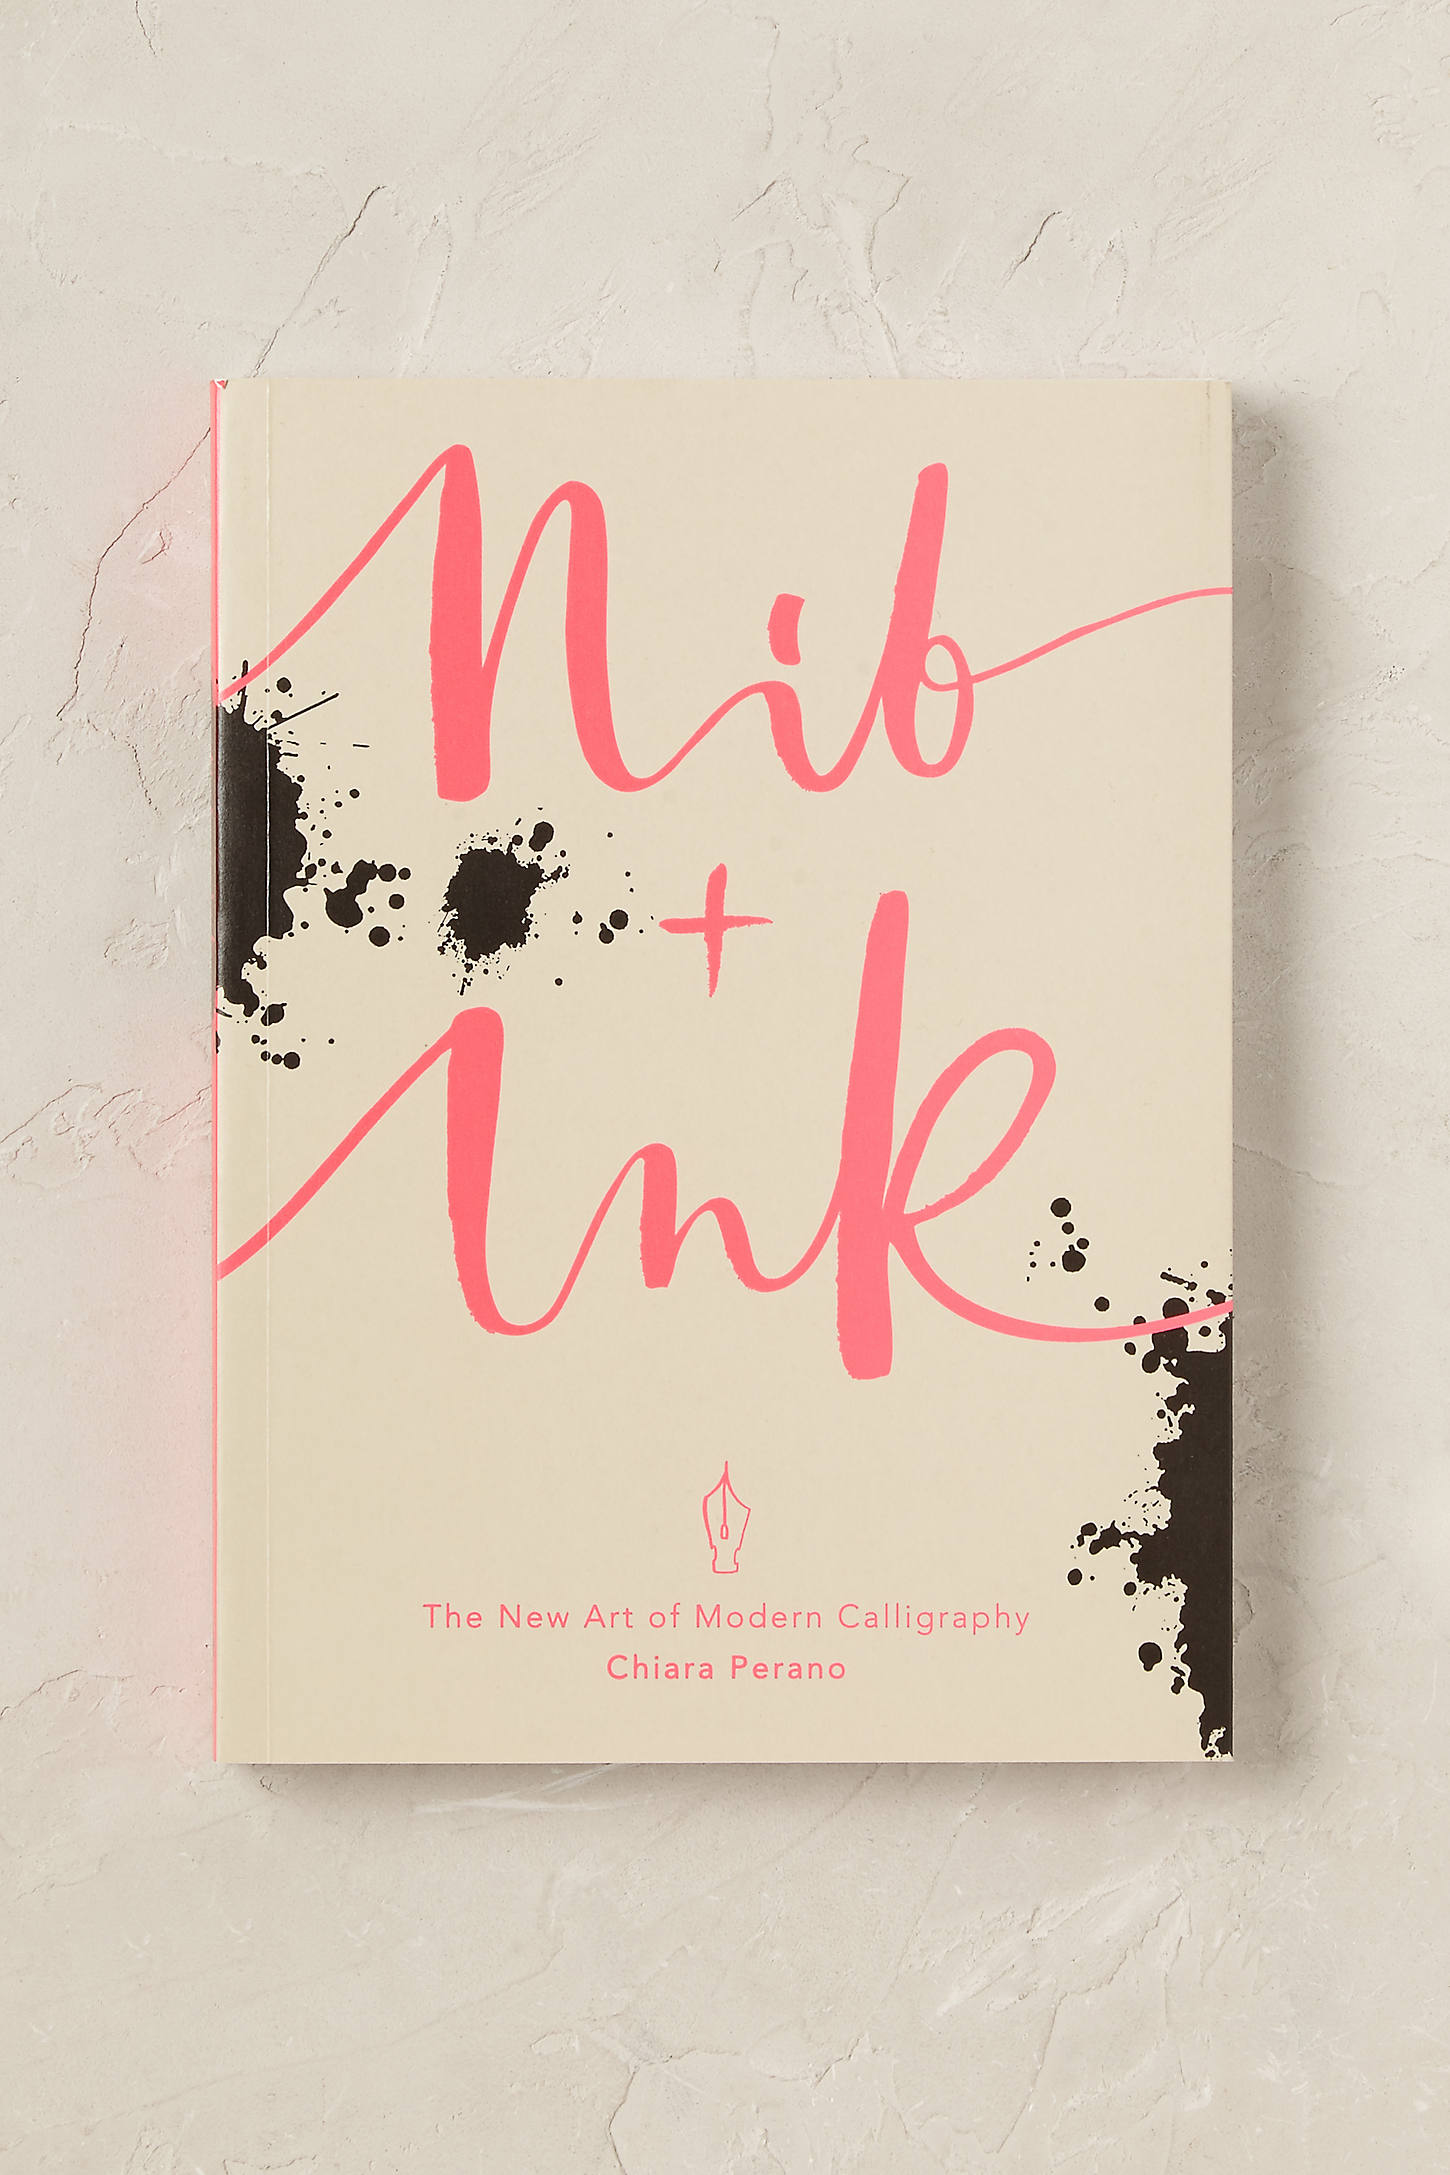 Nib & Ink: The New Art of Modern Calligraphy